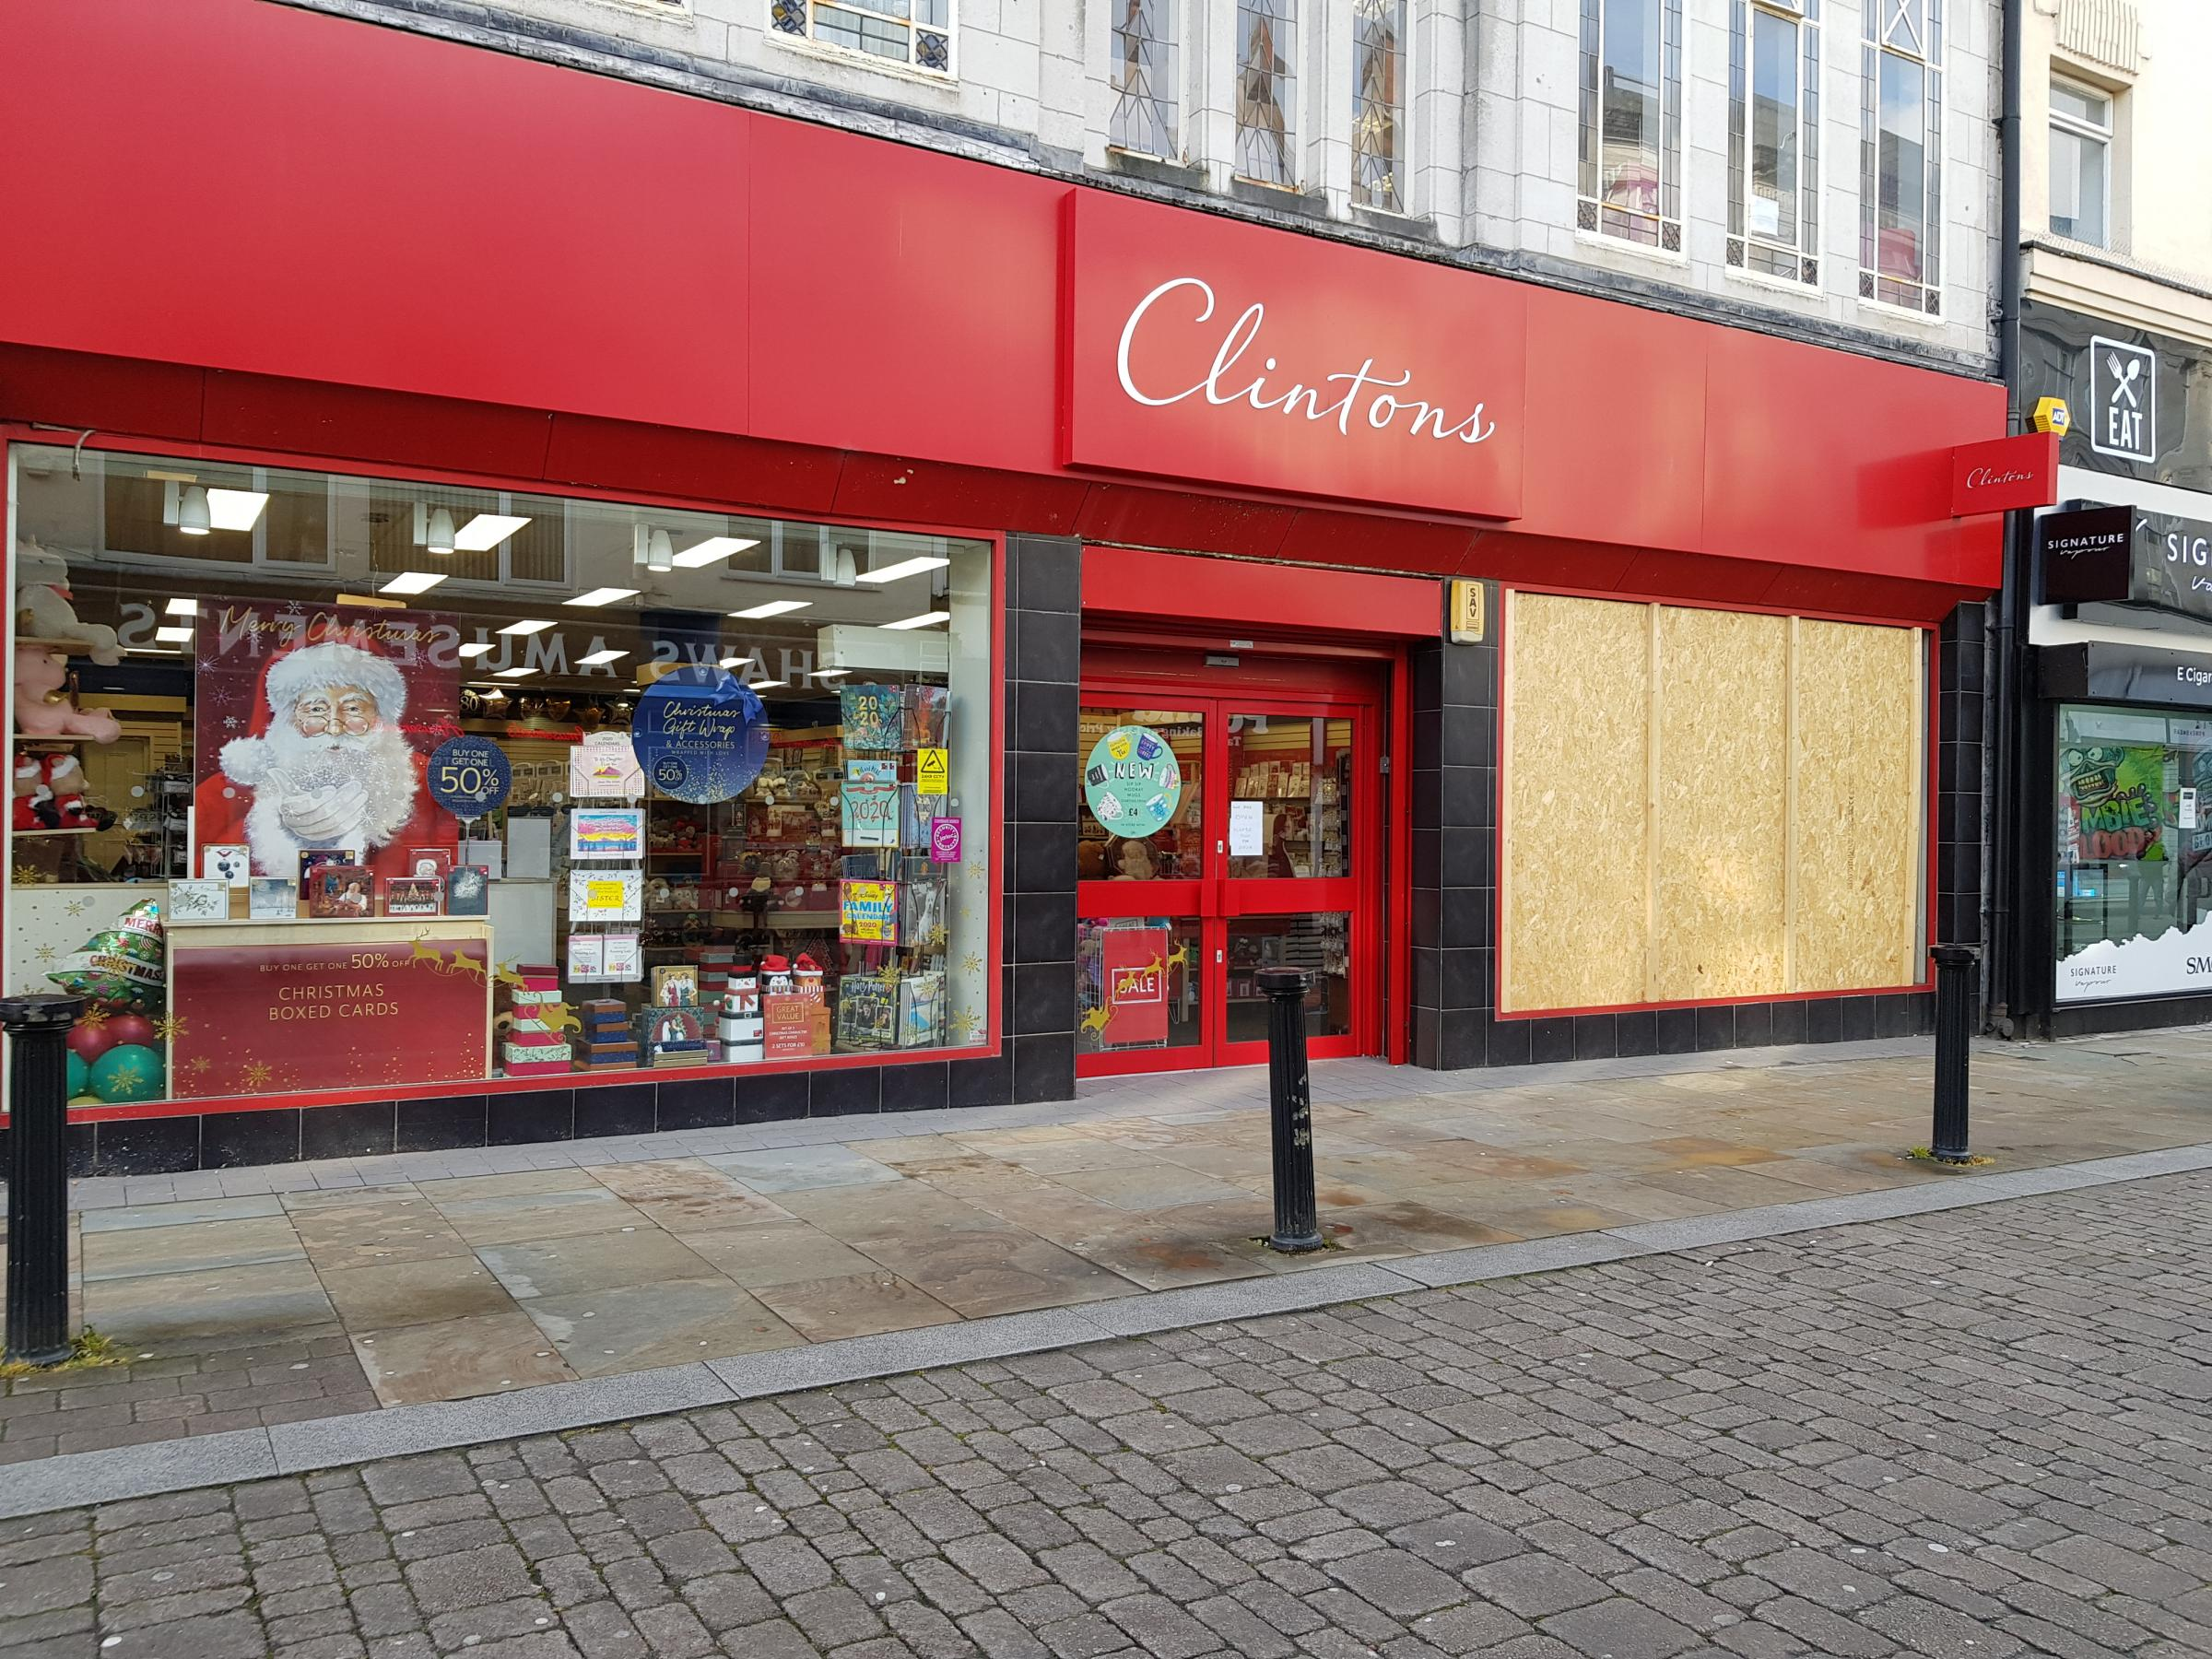 Calls for action after fifth raid on Clintons Bolton shop this year - The Bolton News